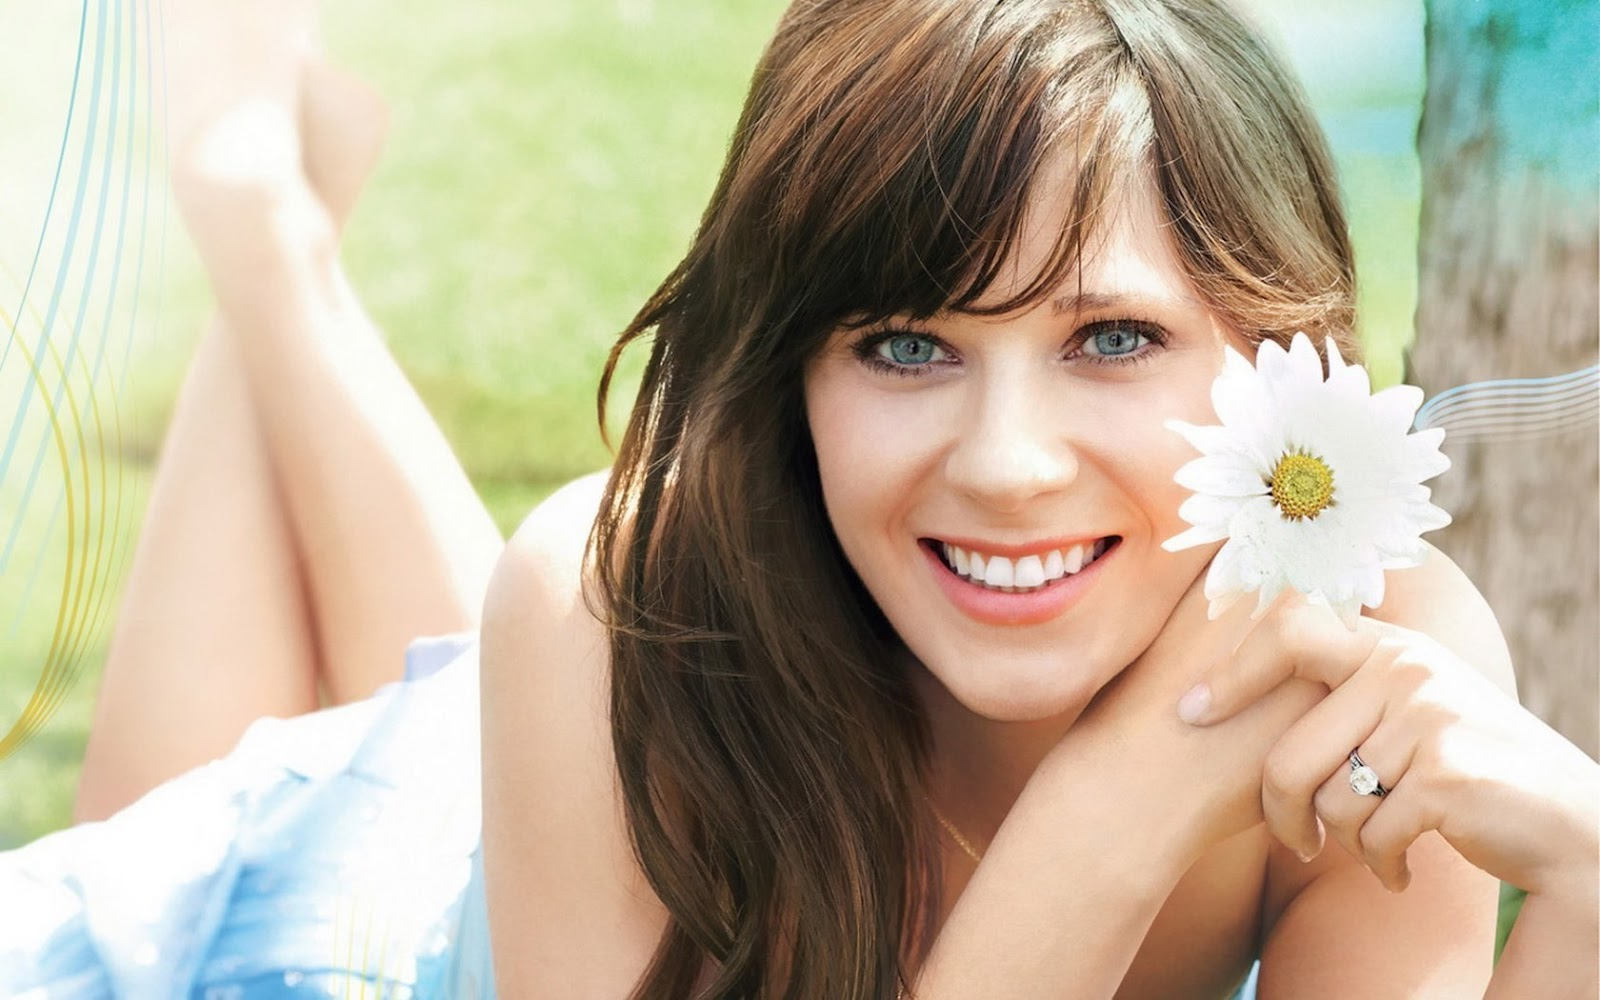 http://4.bp.blogspot.com/-S8tT4I3ULJs/T-60ohjsVQI/AAAAAAAAJ-4/Mm3cu0X0MAg/s1600/Zooey-Deschanel-Widescreen-Wallpaper-zooey-deschanel-8422251-1680-1050.jpg